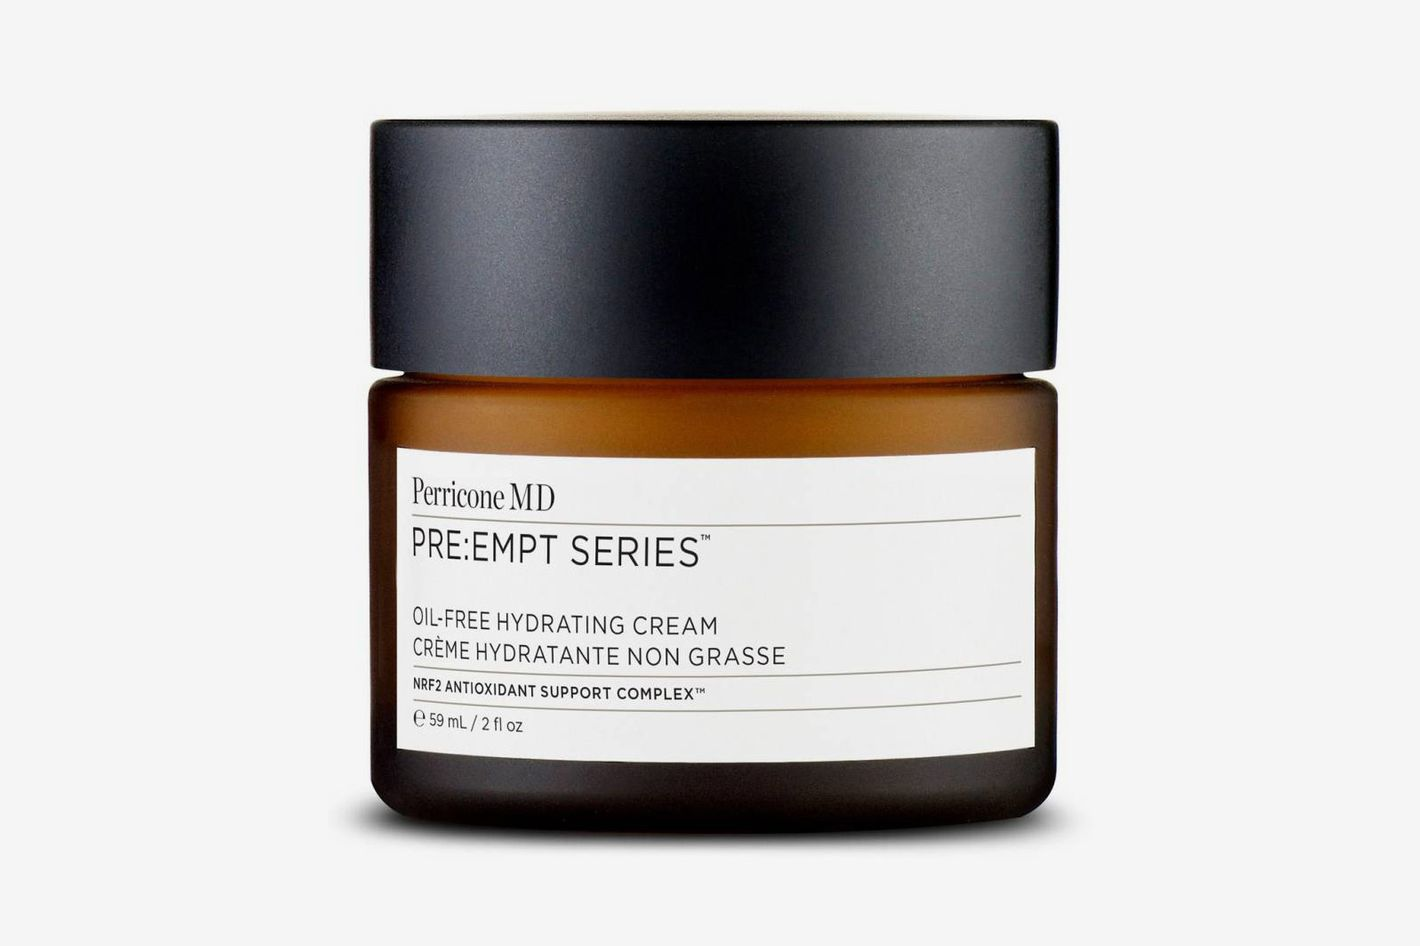 Perricone MD Pre:Empt MD Oil-Free Hydrating Cream